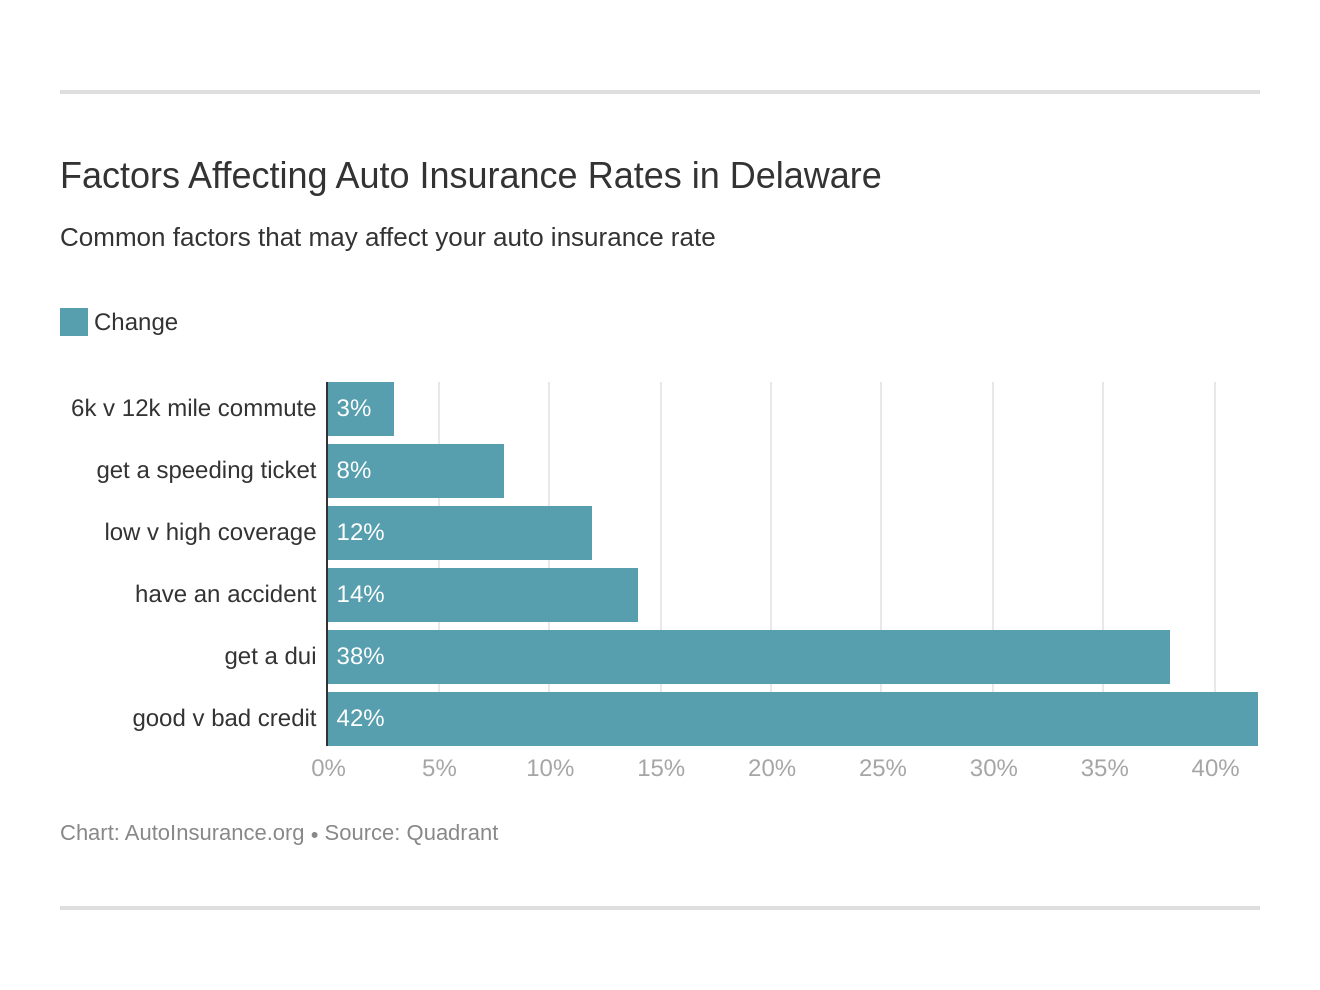 Factors Affecting Auto Insurance Rates in Delaware